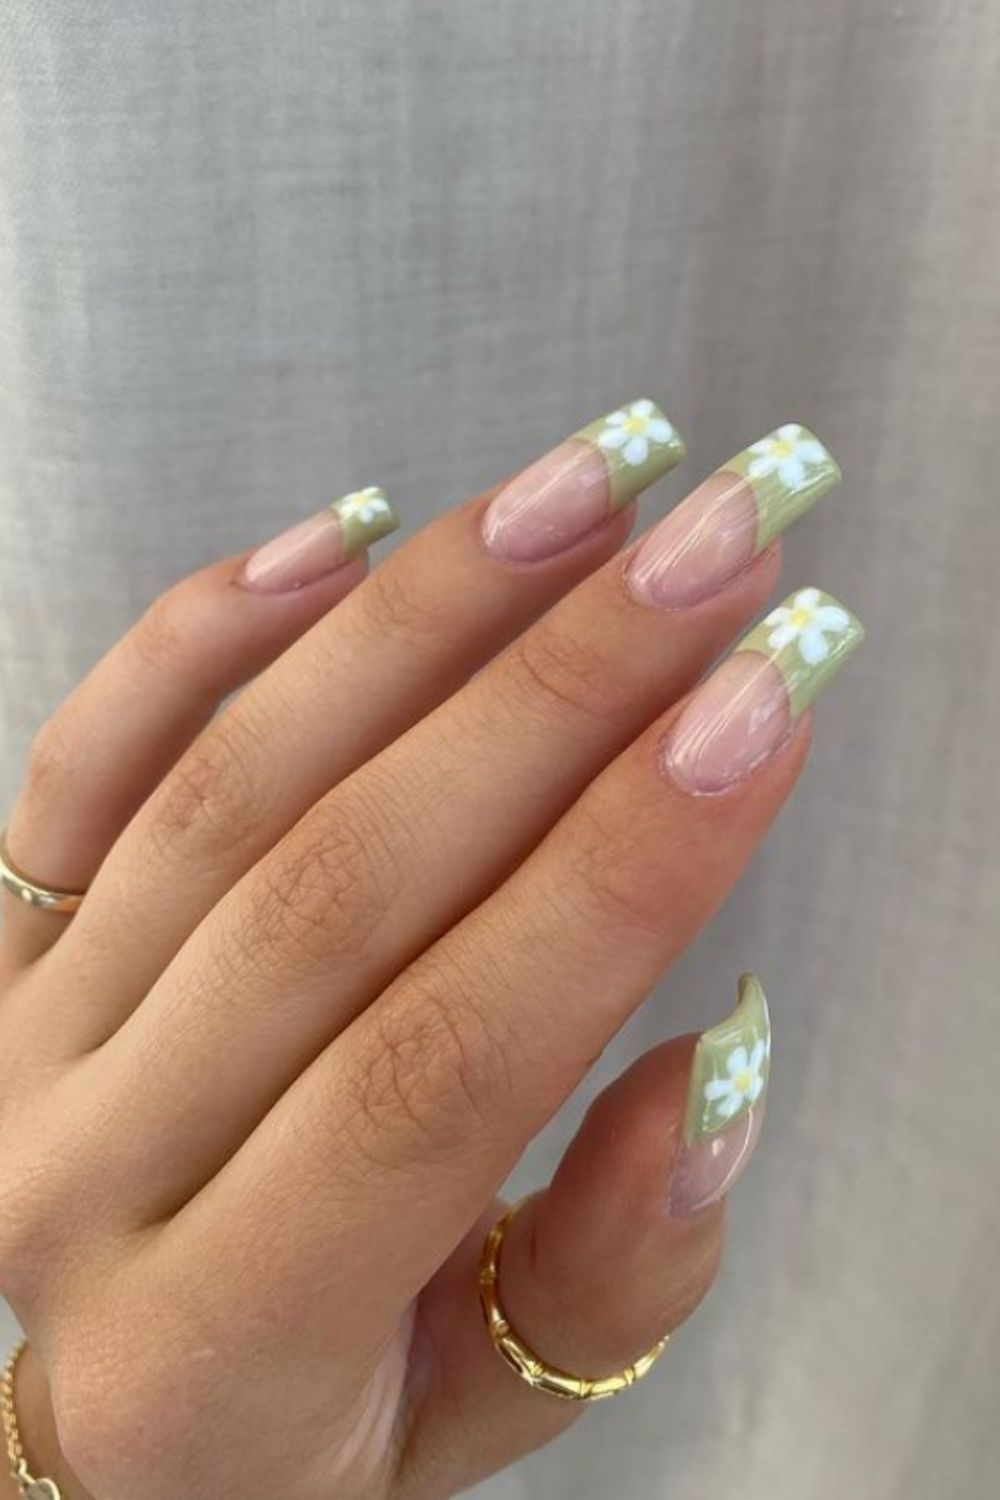 Summer French Tip Acrylic Coffin Nails To Try 2021!